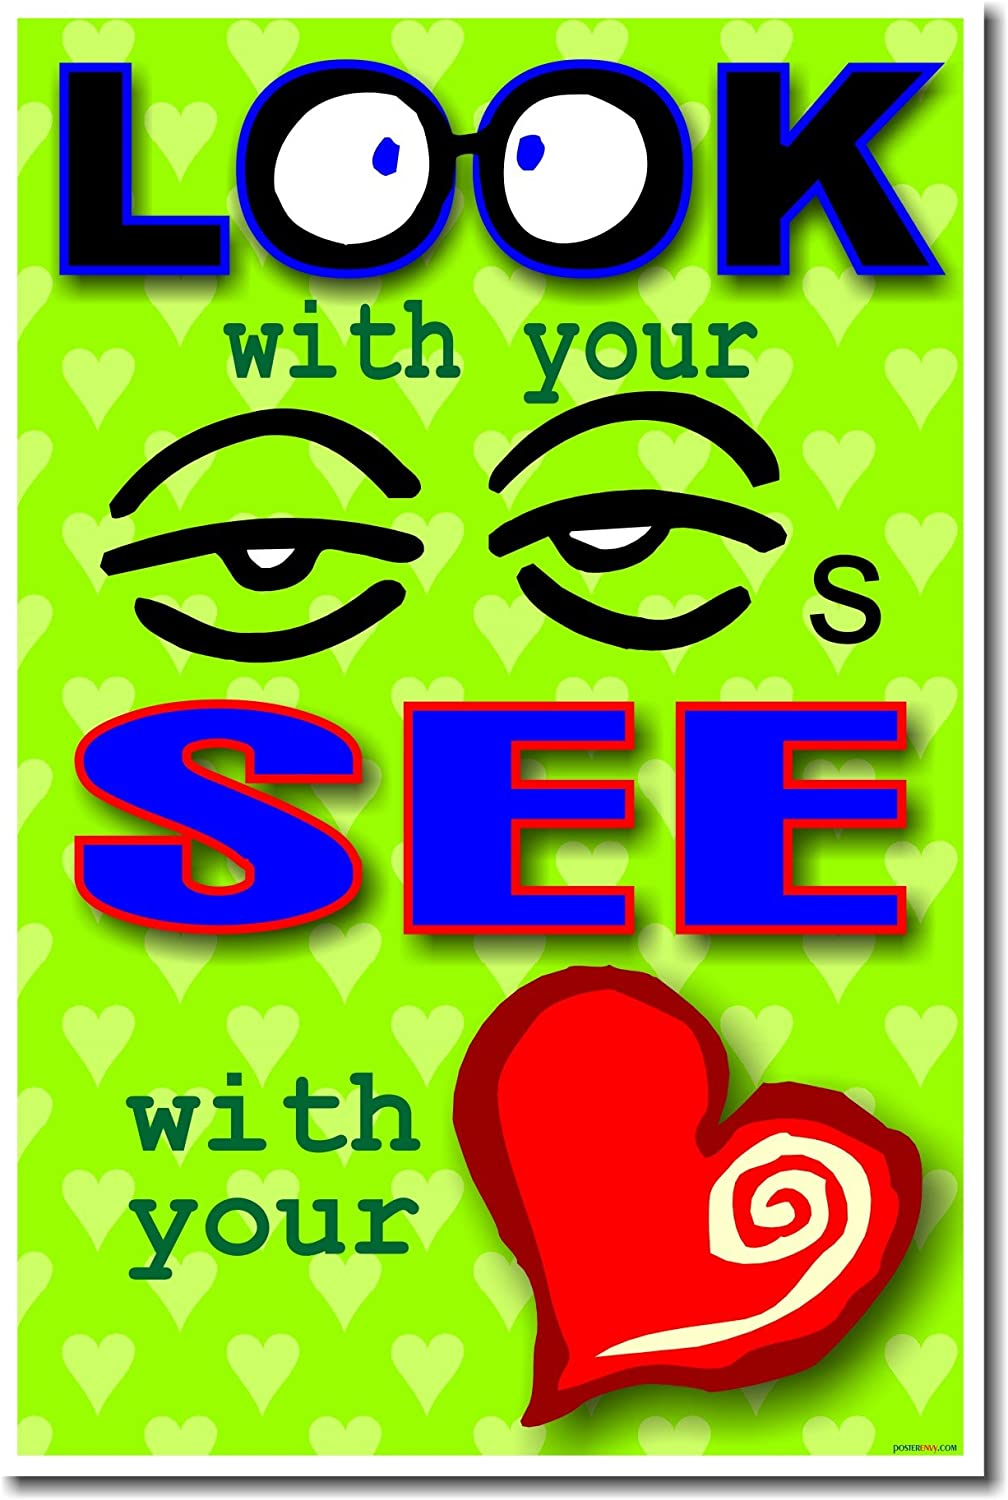 Amazon Com Look With Your Eyes And See With Your Heart School Classroom Motivational Poster Prints Posters Prints